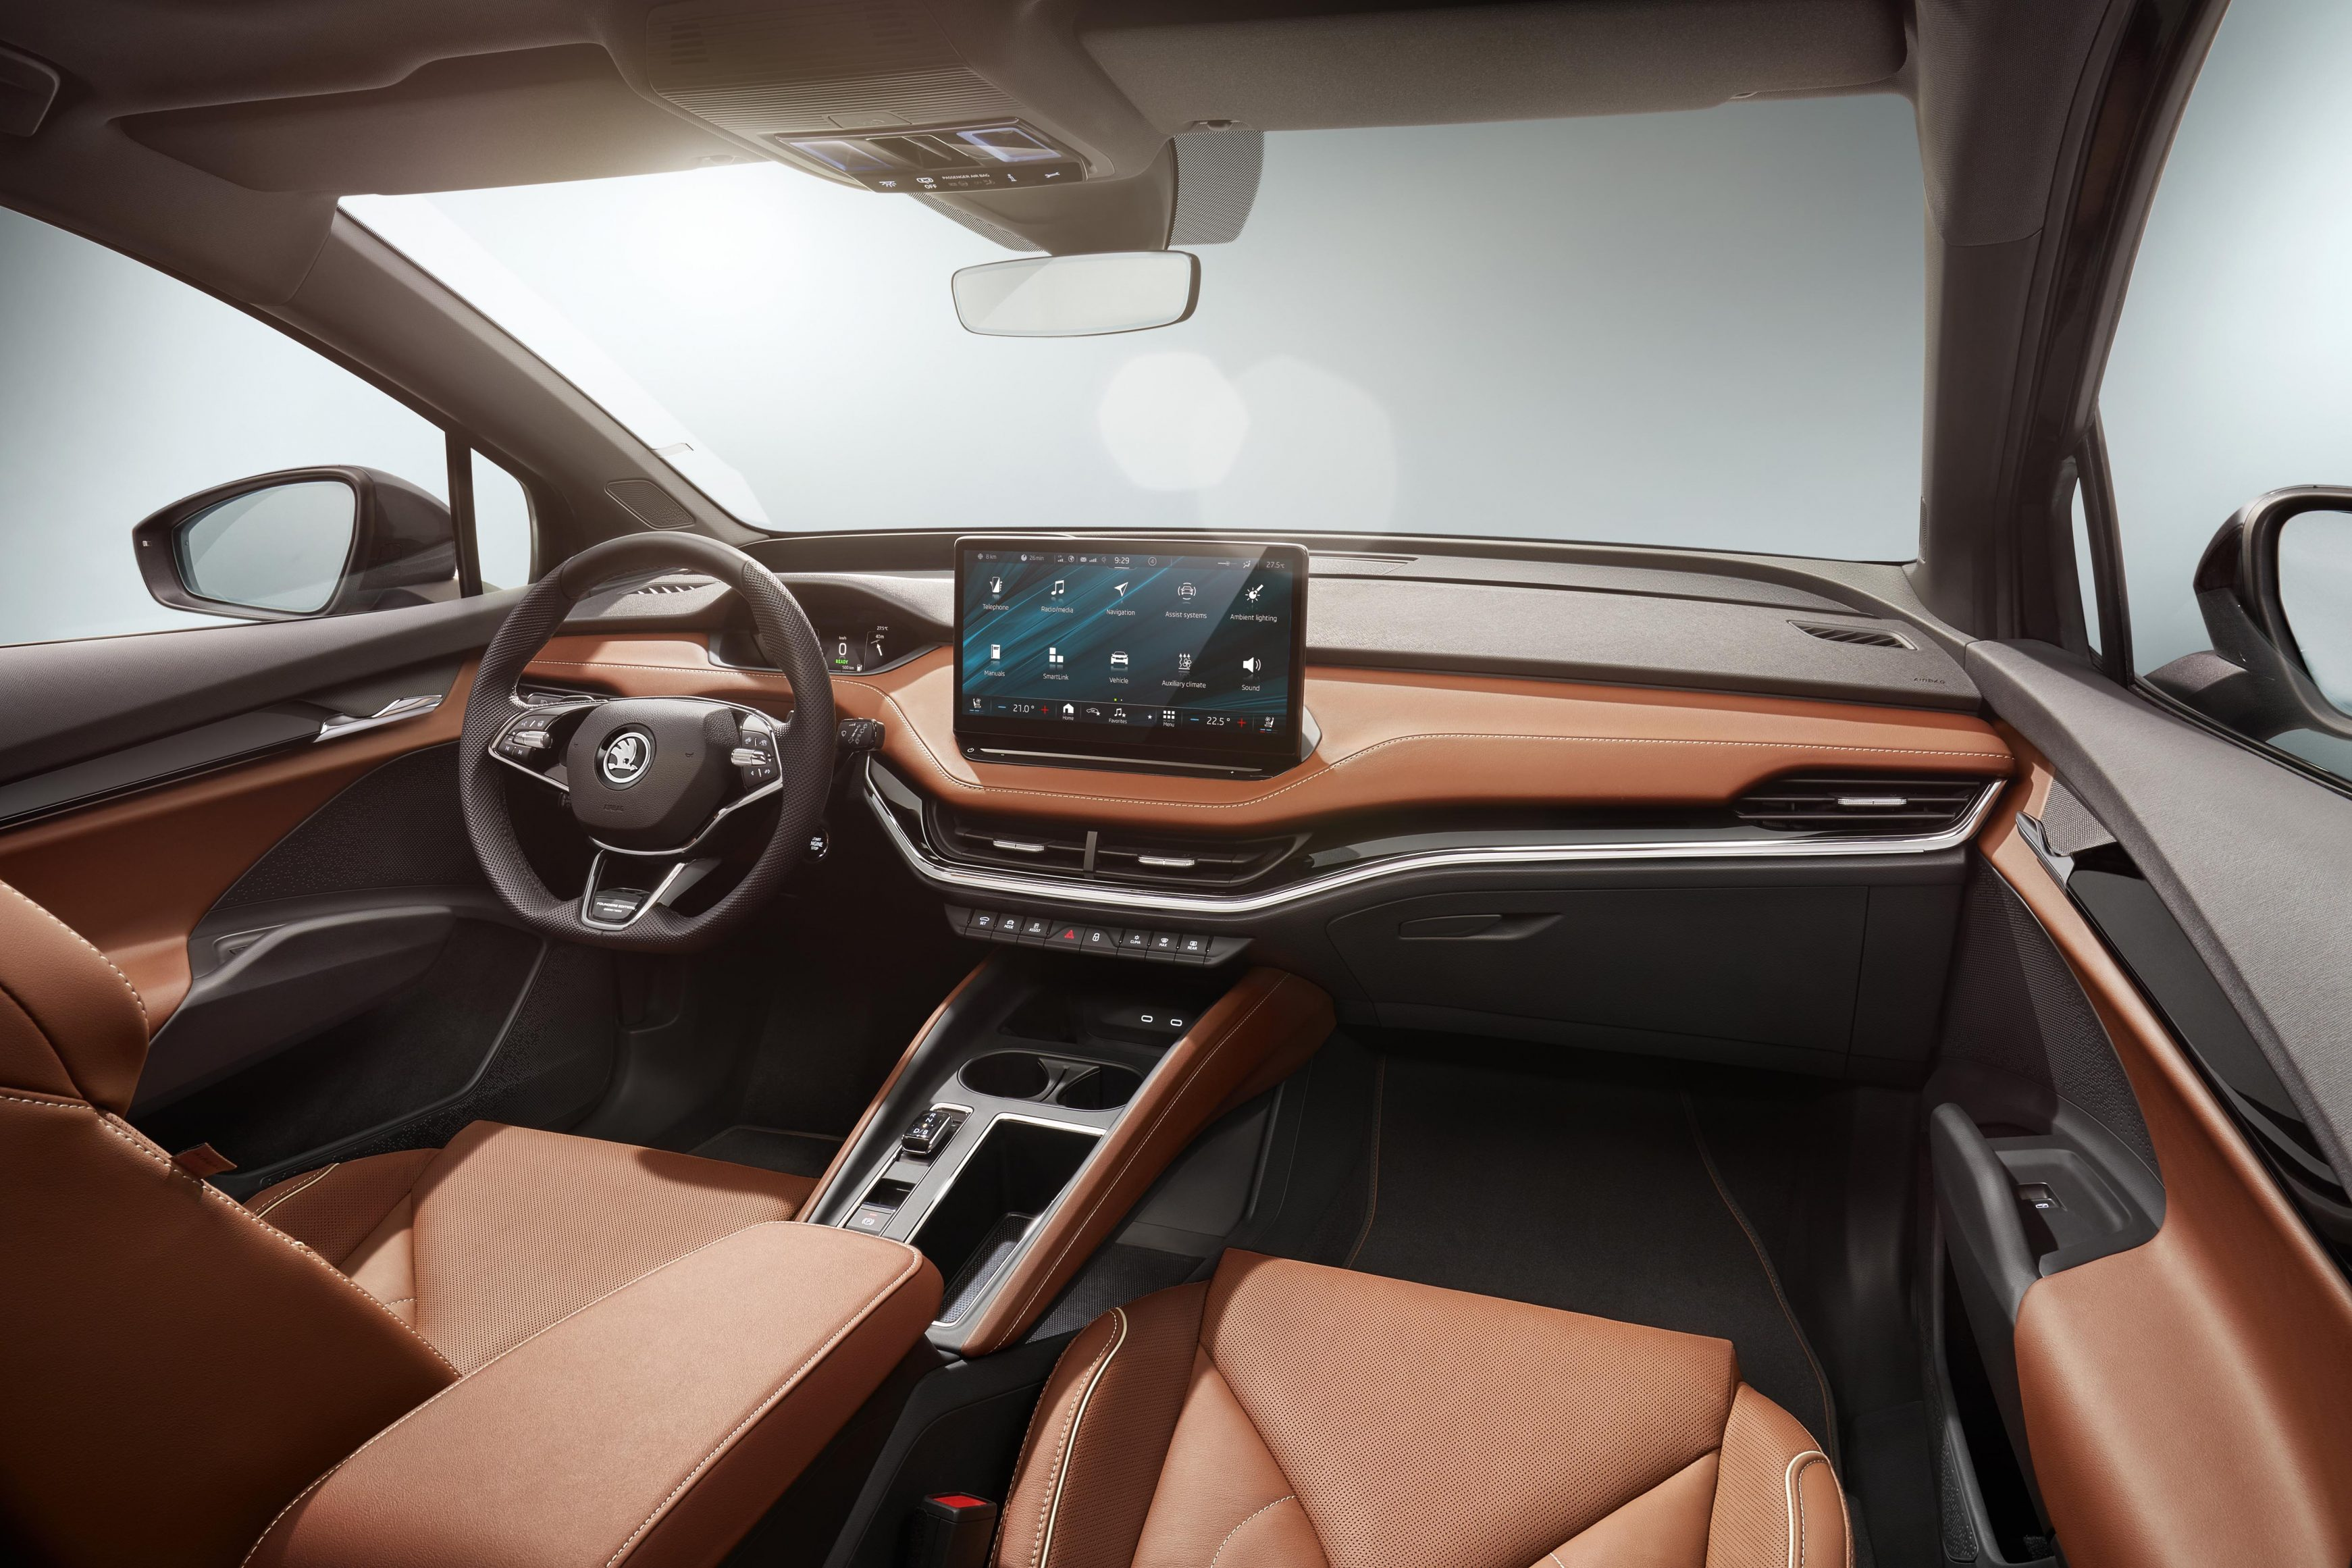 The Skoda Enyaq iV has a beautifully crafted interior which houses modern tech and high-end materials